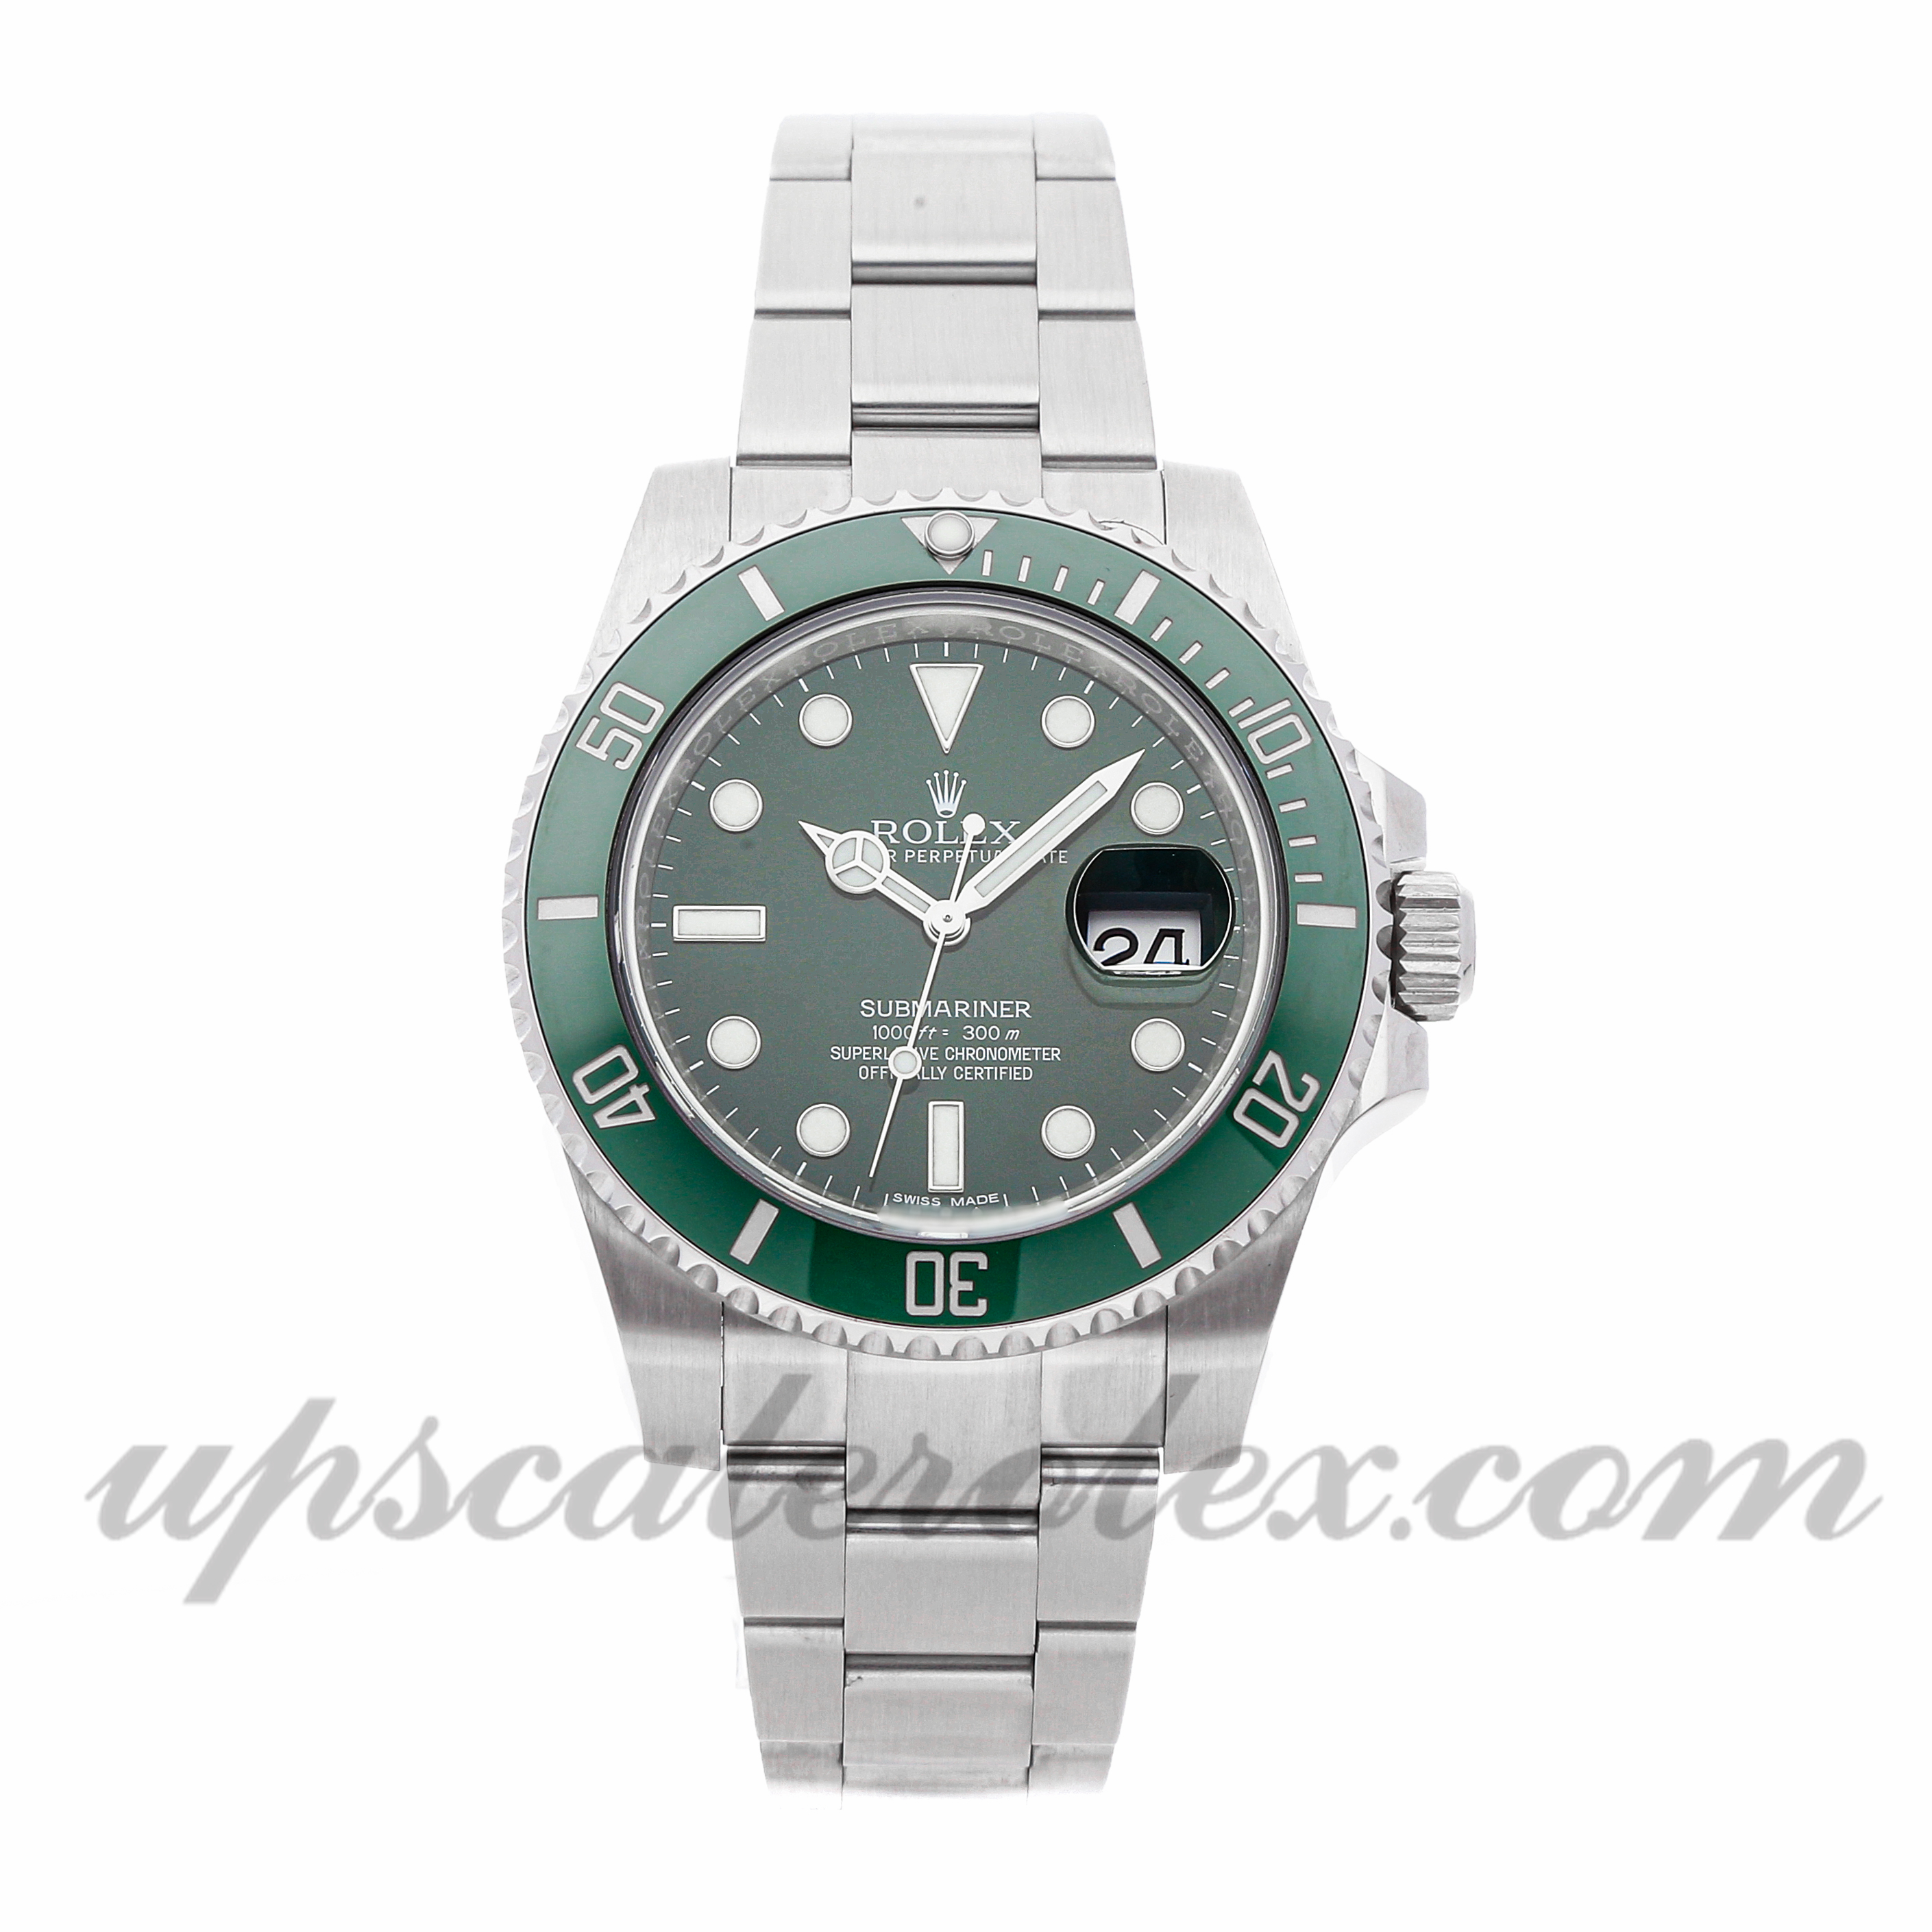 Mens Rolex Submariner 116610lv 40mm Case Mechanical (Automatic) Movement Green Dial